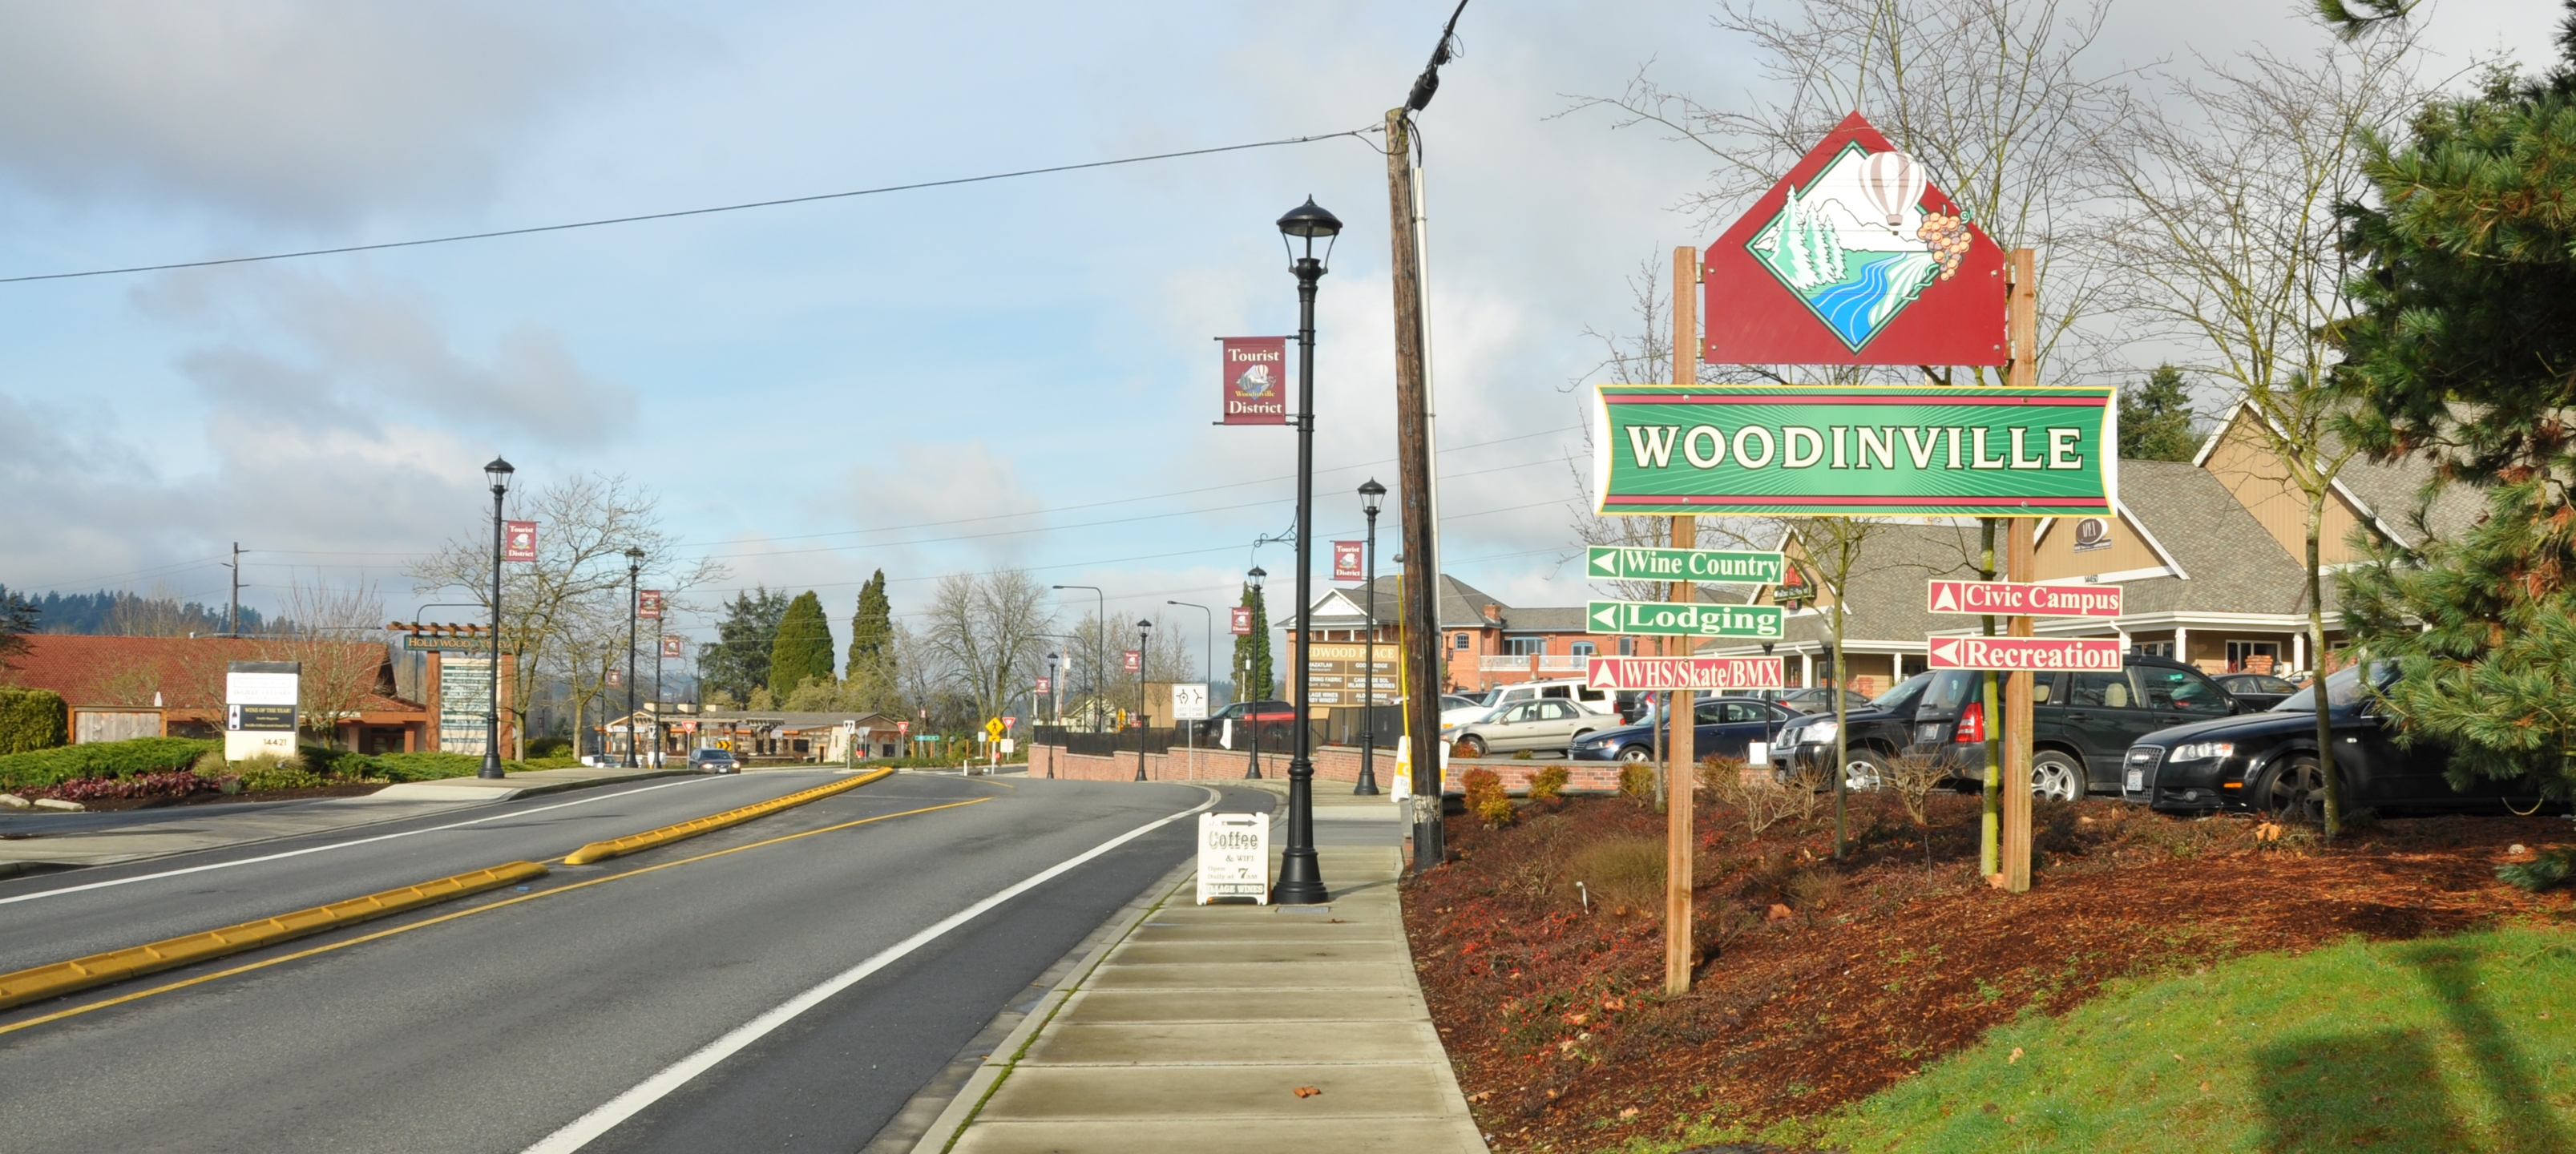 Woodinville Homes For Sale Amp Woodinville Real Estate